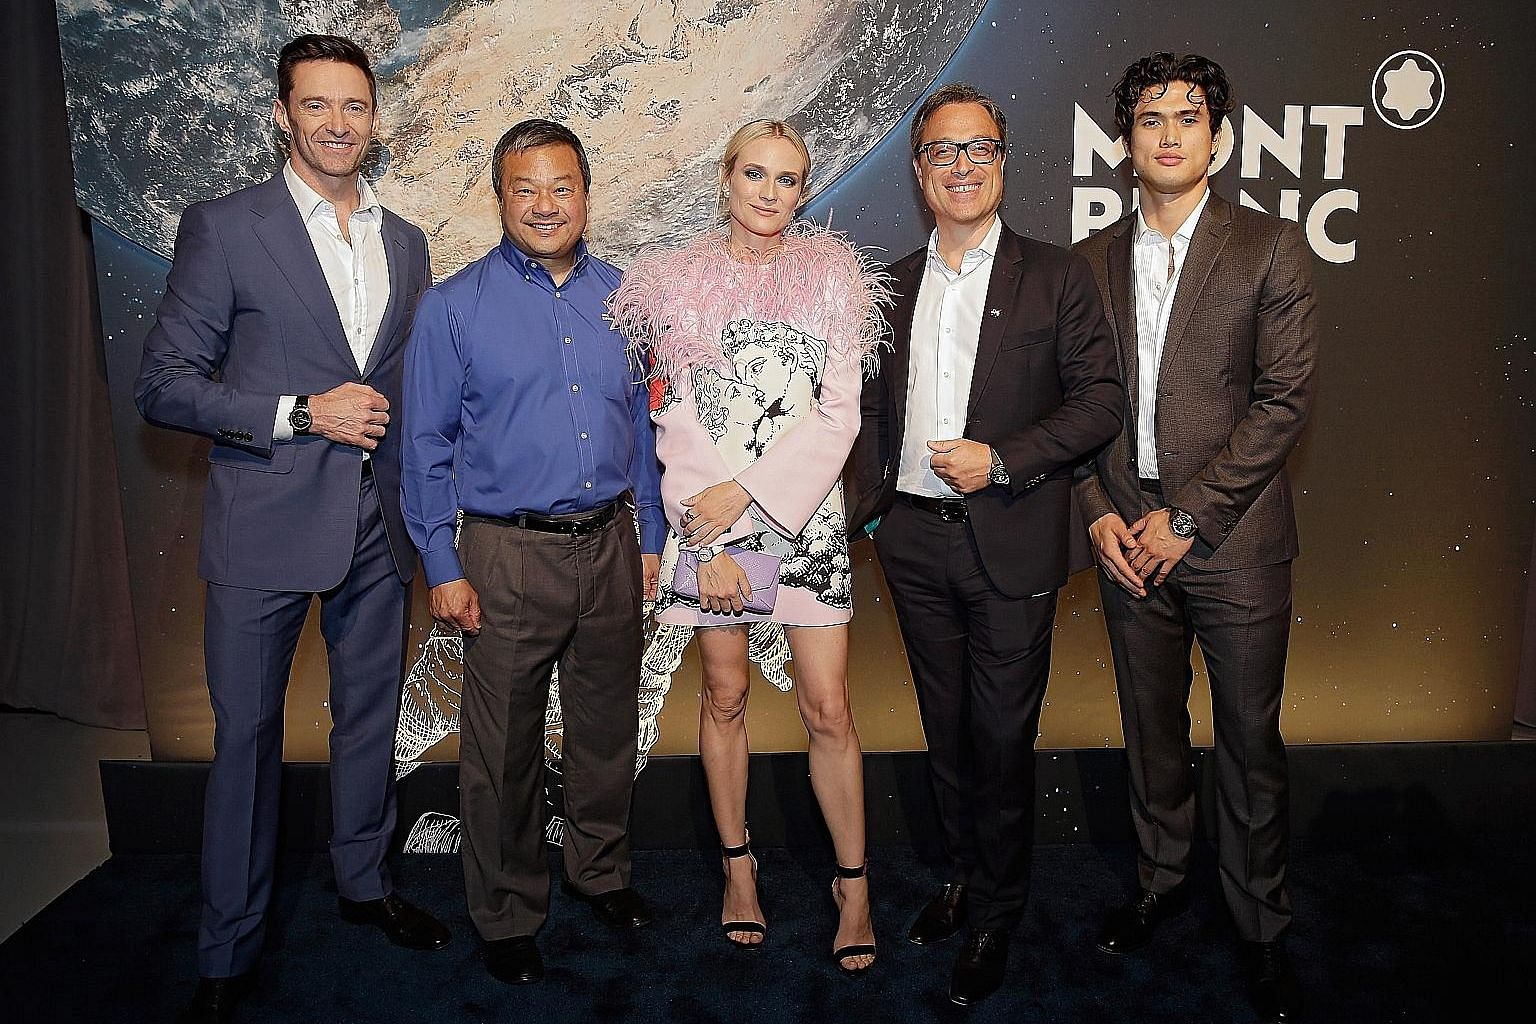 At the launch of Montblanc's re-imagined line of StarWalker pens are (from left) actor Hugh Jackman, former astronaut Leroy Chiao, actress Diane Kruger, Montblanc's chief executive officer Nicolas Baretzki and actor Charles Melton.